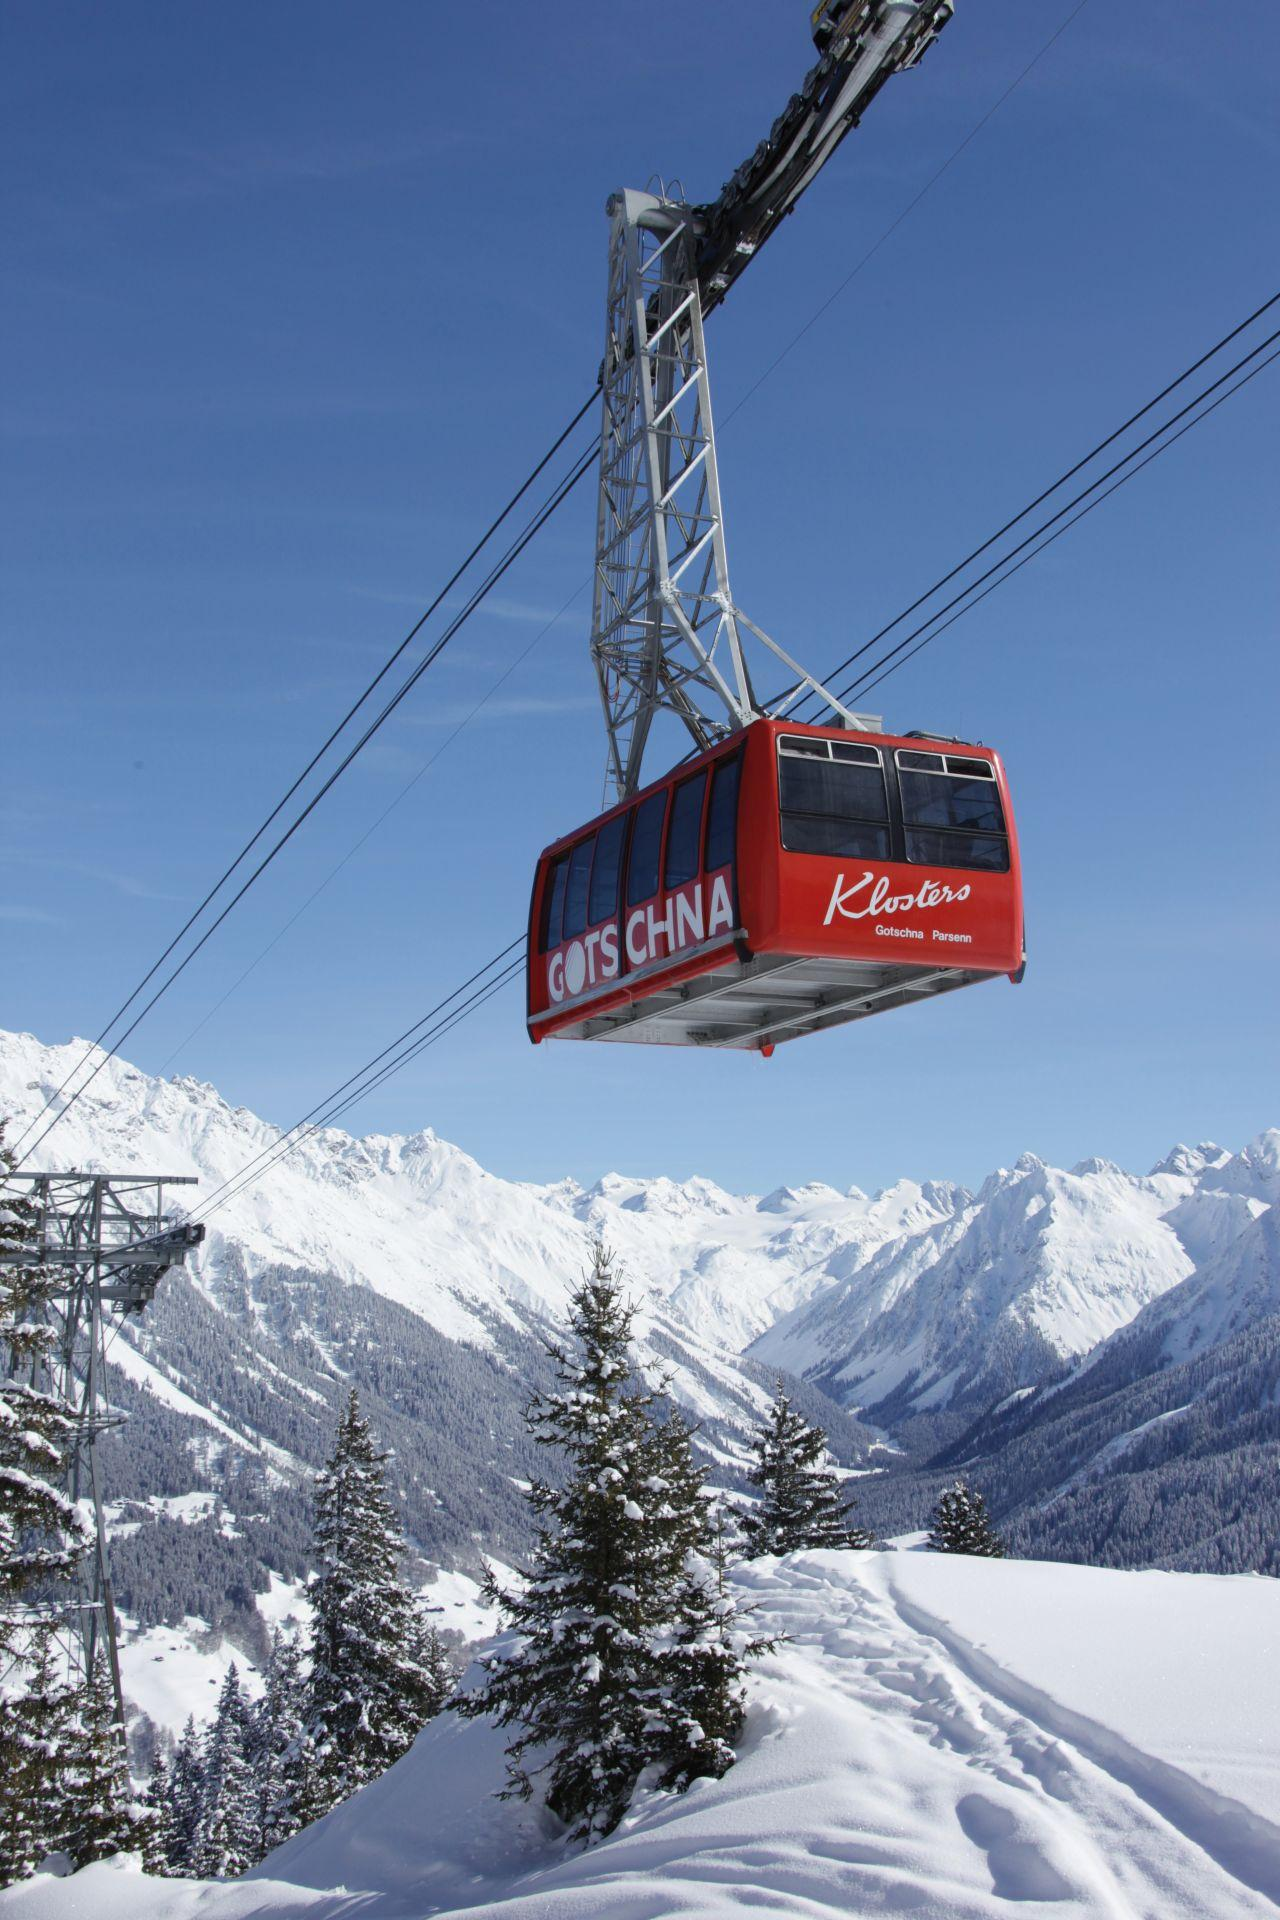 Klosters Winter